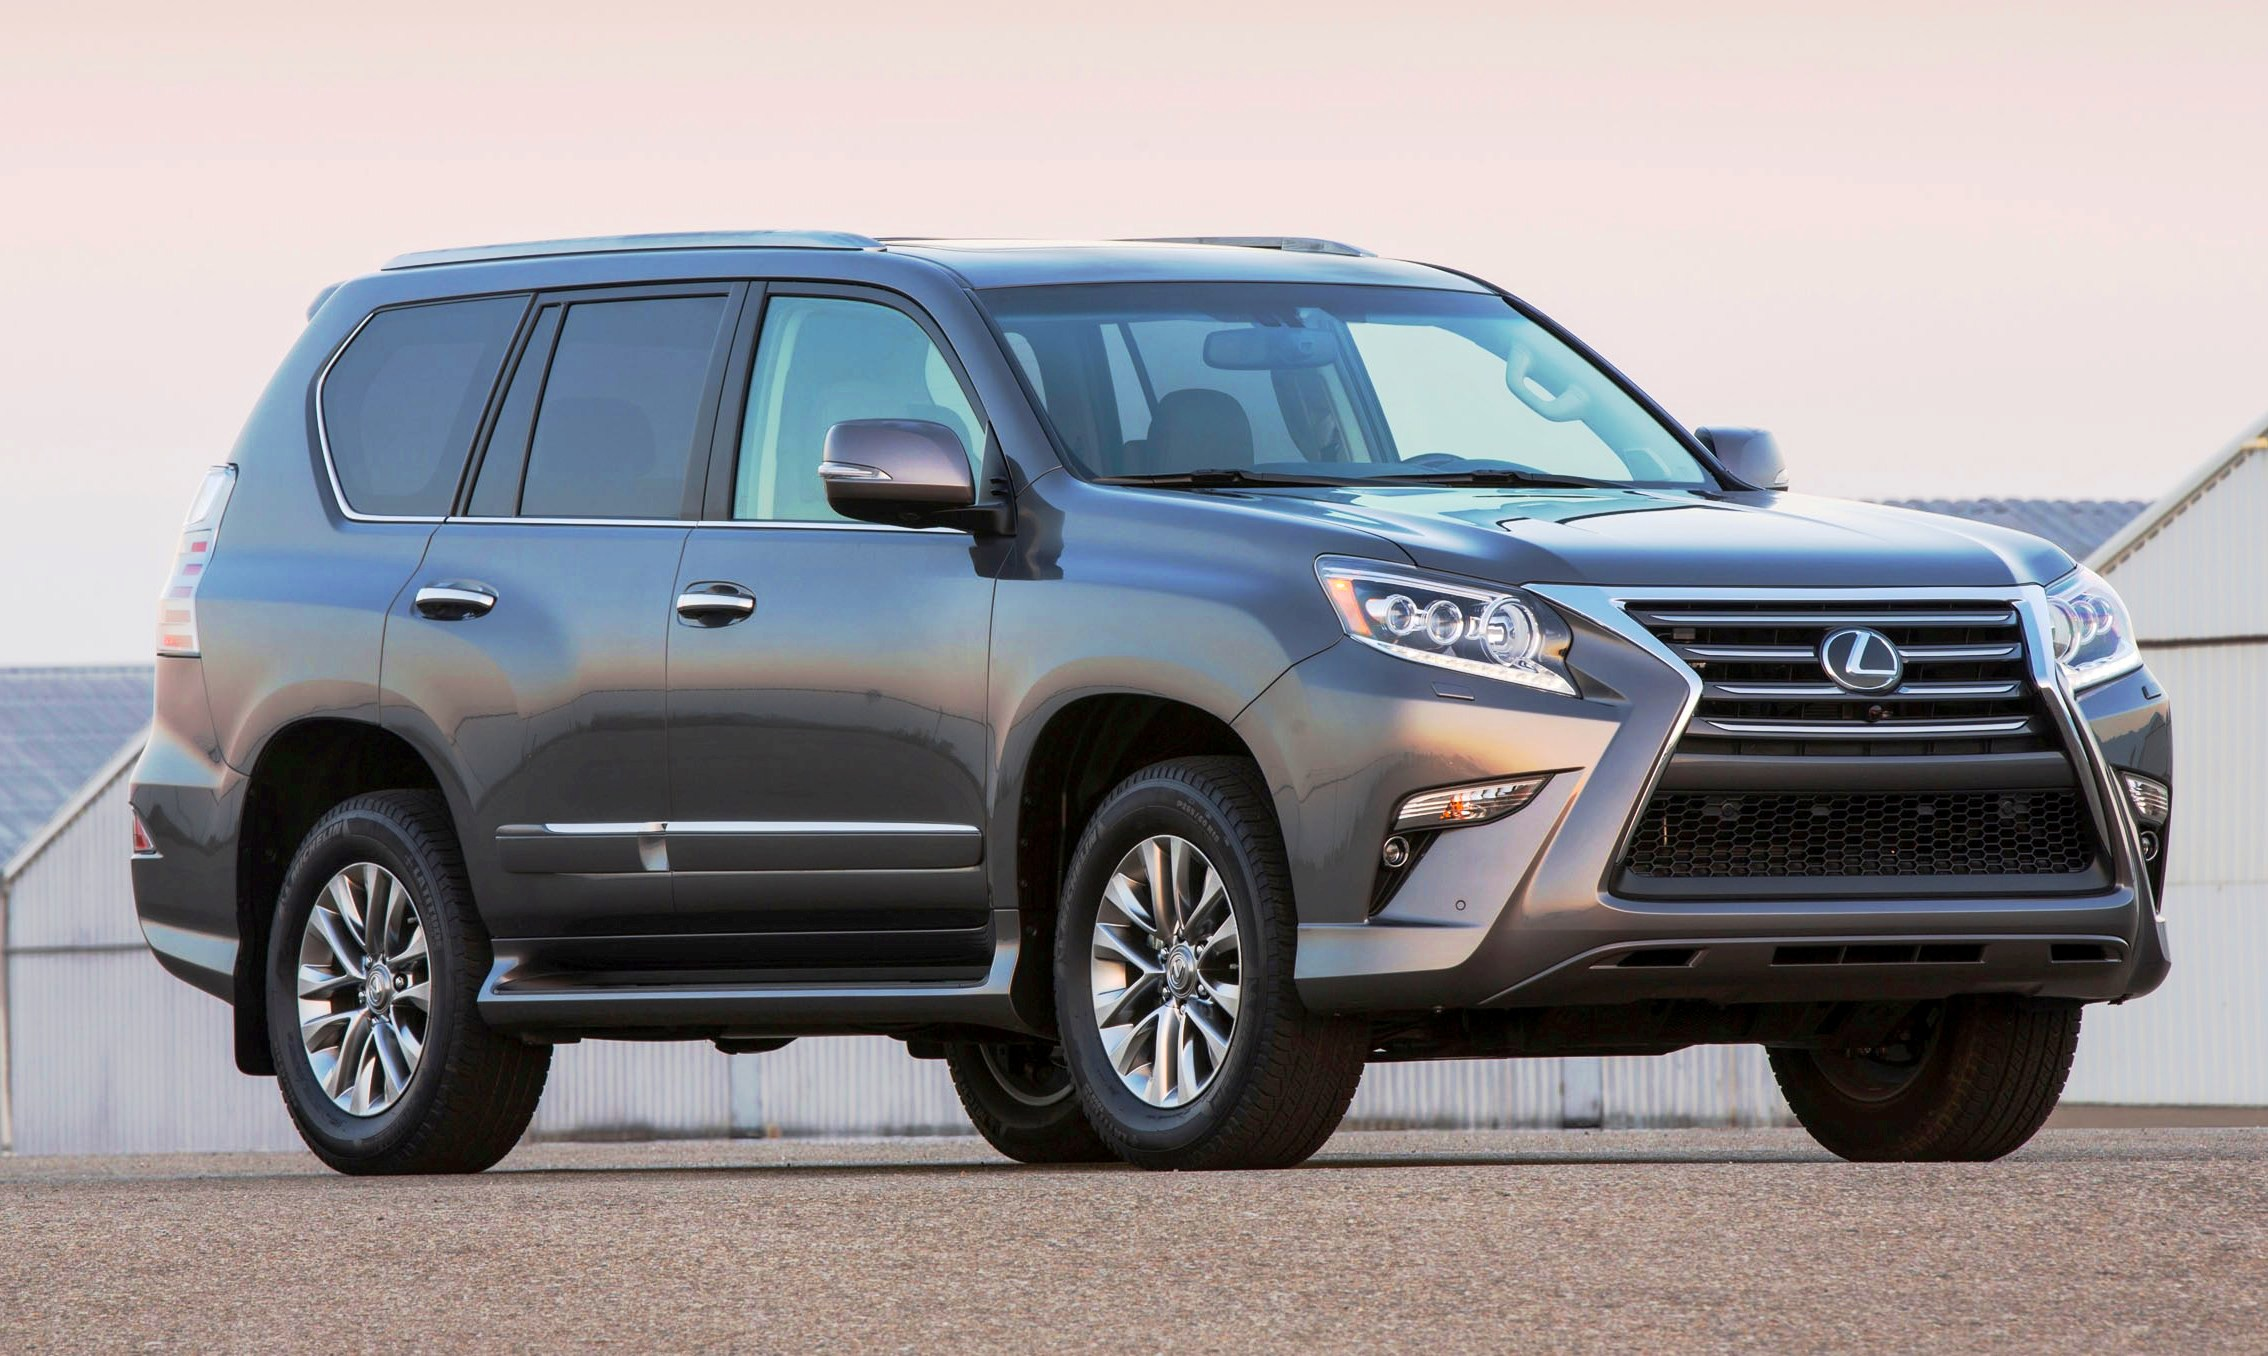 New Lexus Suv >> 2014 Lexus GX 460 Review - Top Speed